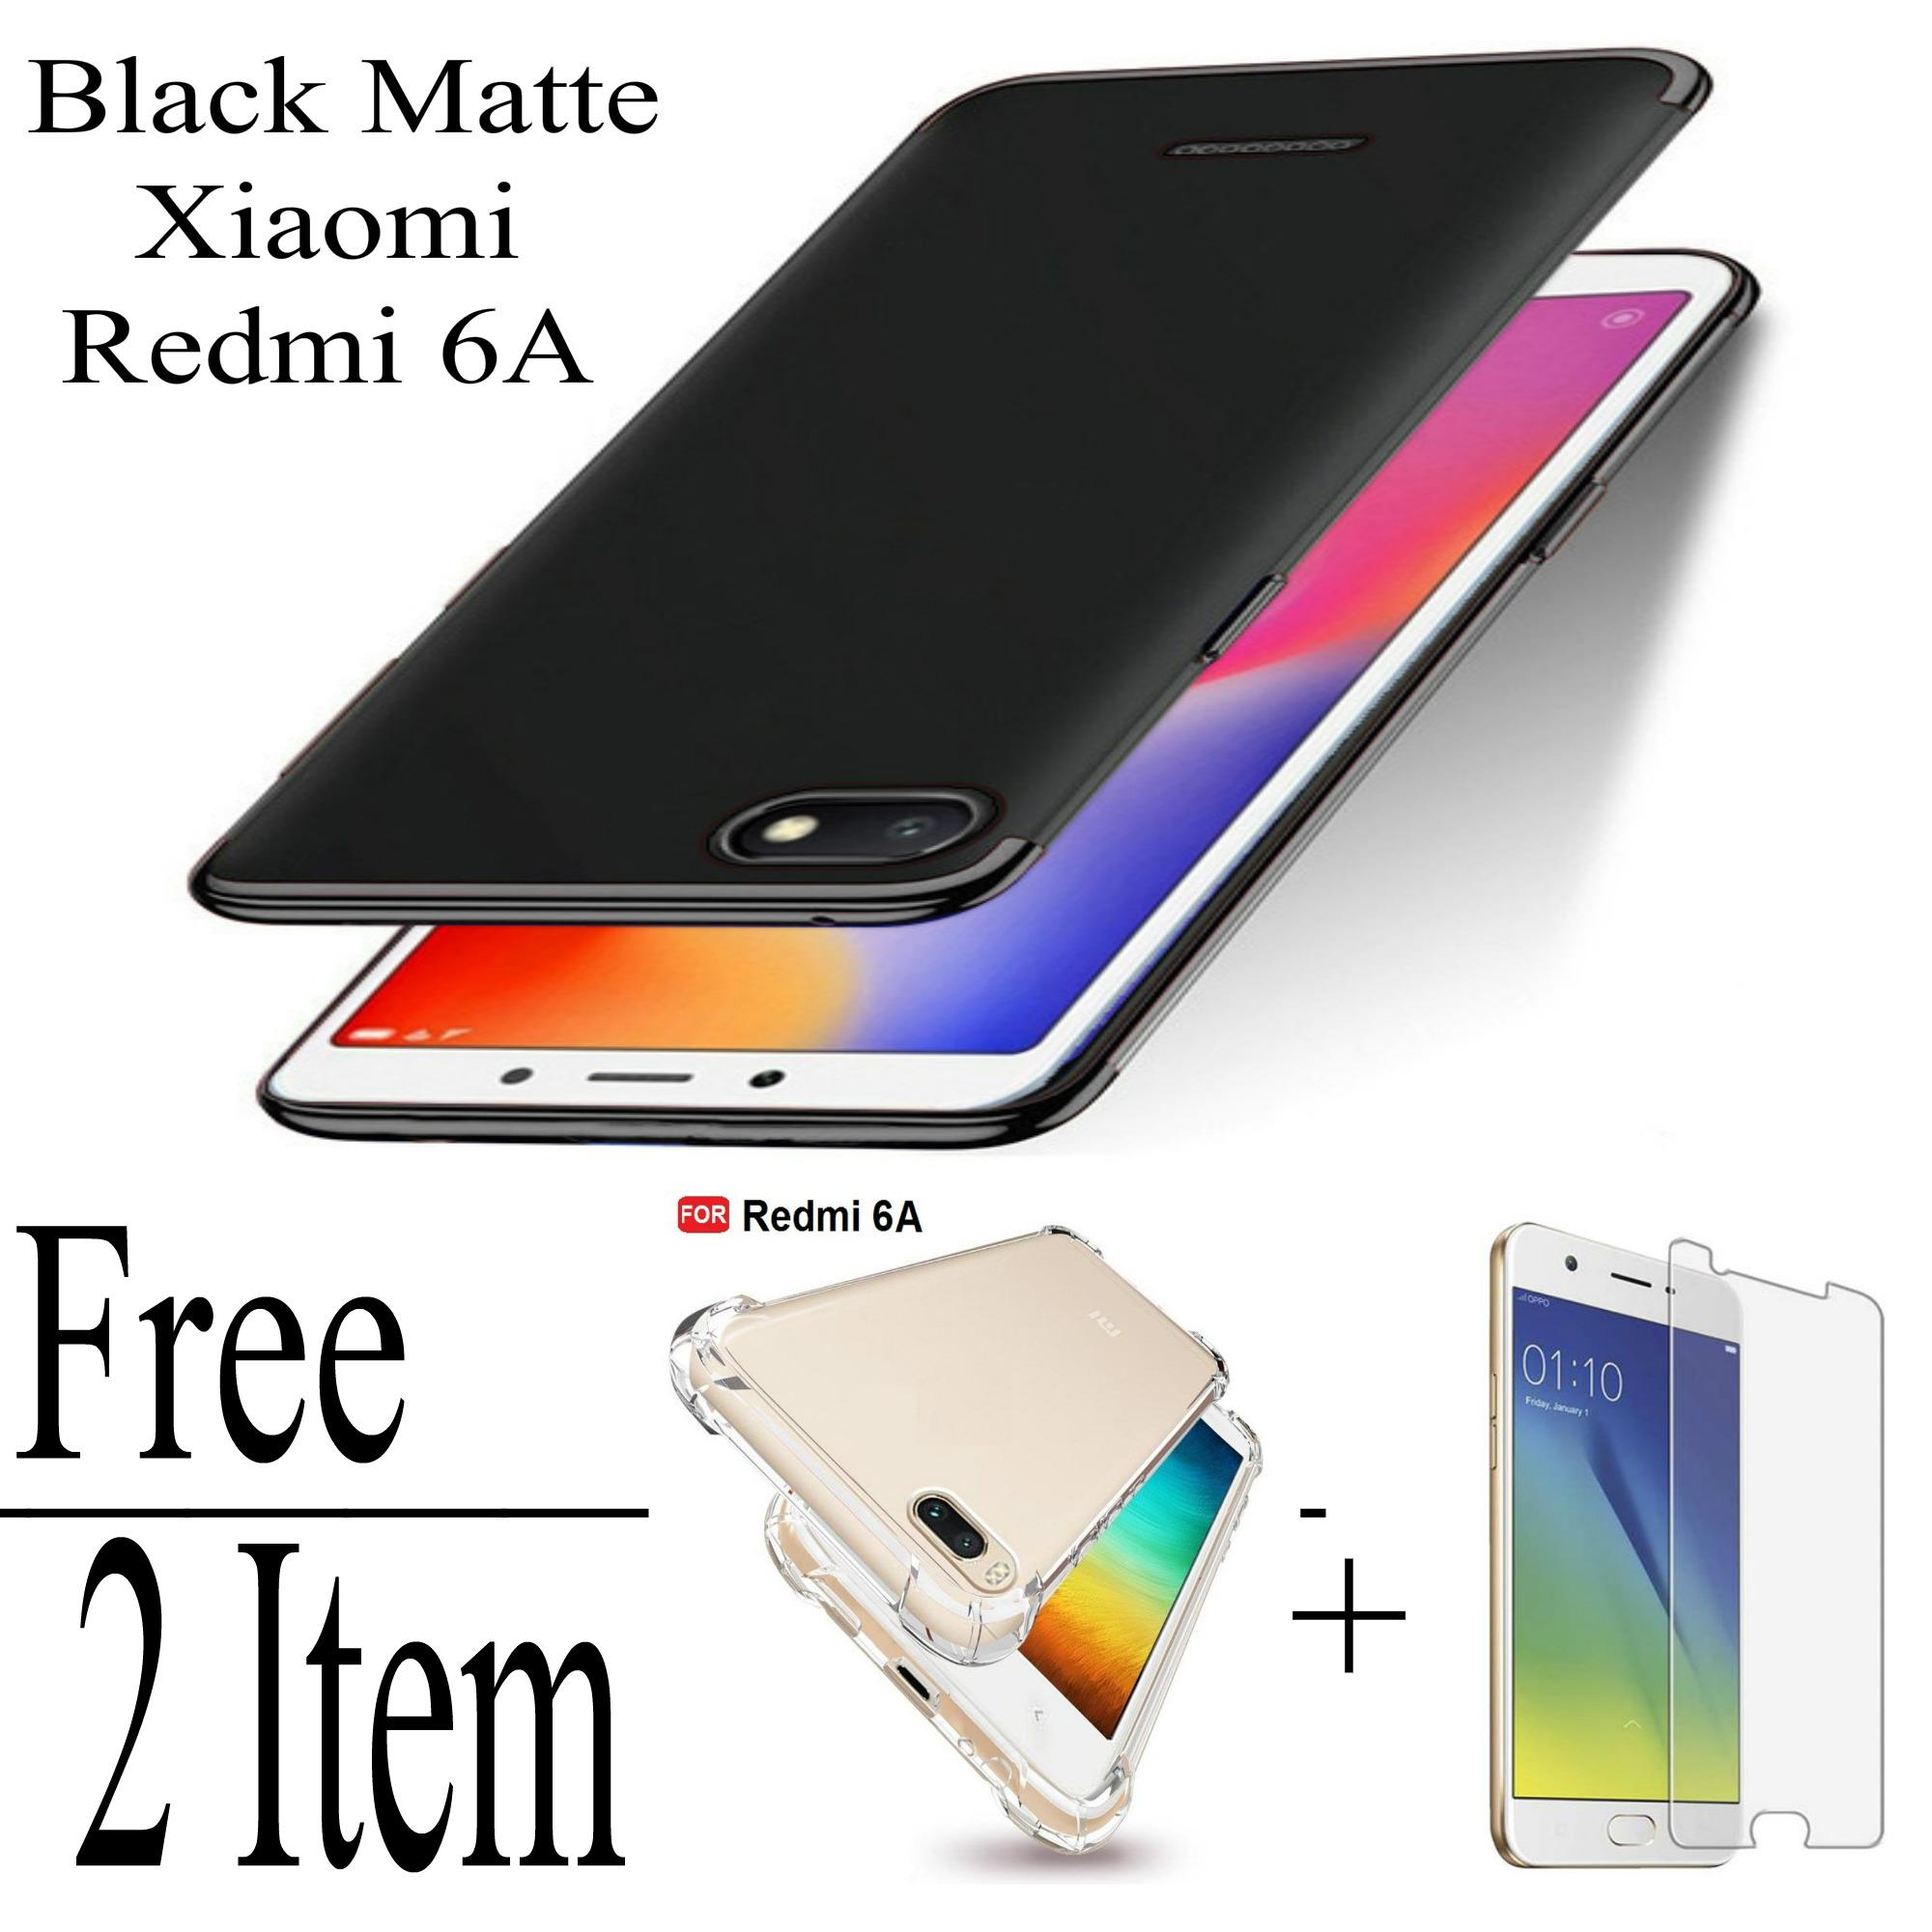 Softcase / case Black Matte For Xiaomi Redmi 6A Free Anti Crack + Tempered Glass /